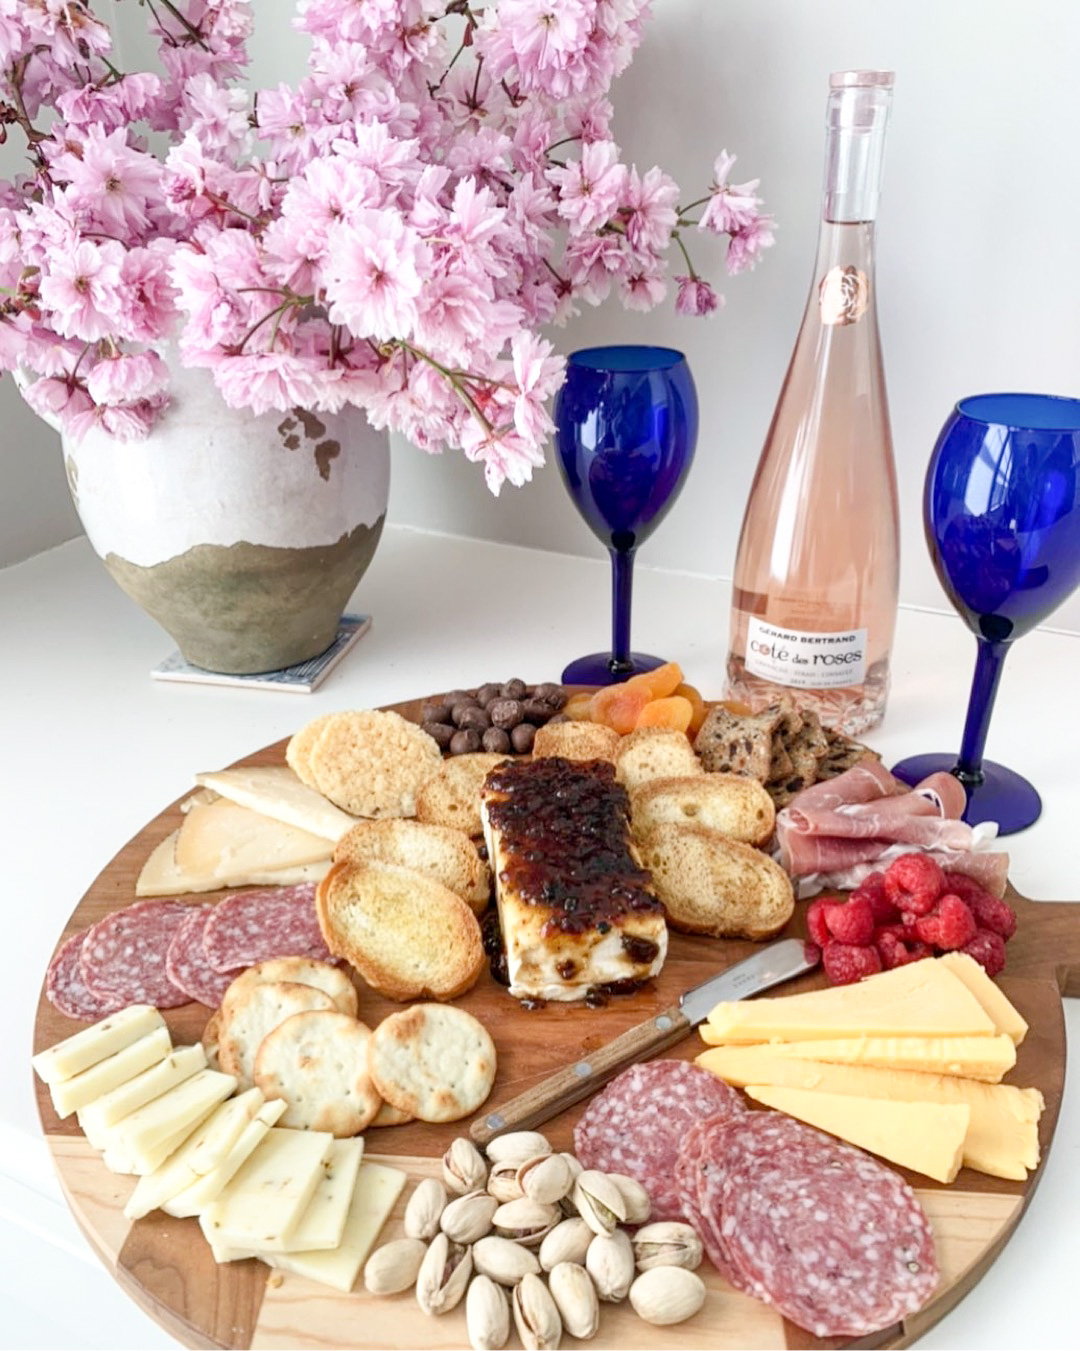 How to Make a Summer Cheese Board | Summer Cheese, Wine and Accoutrements